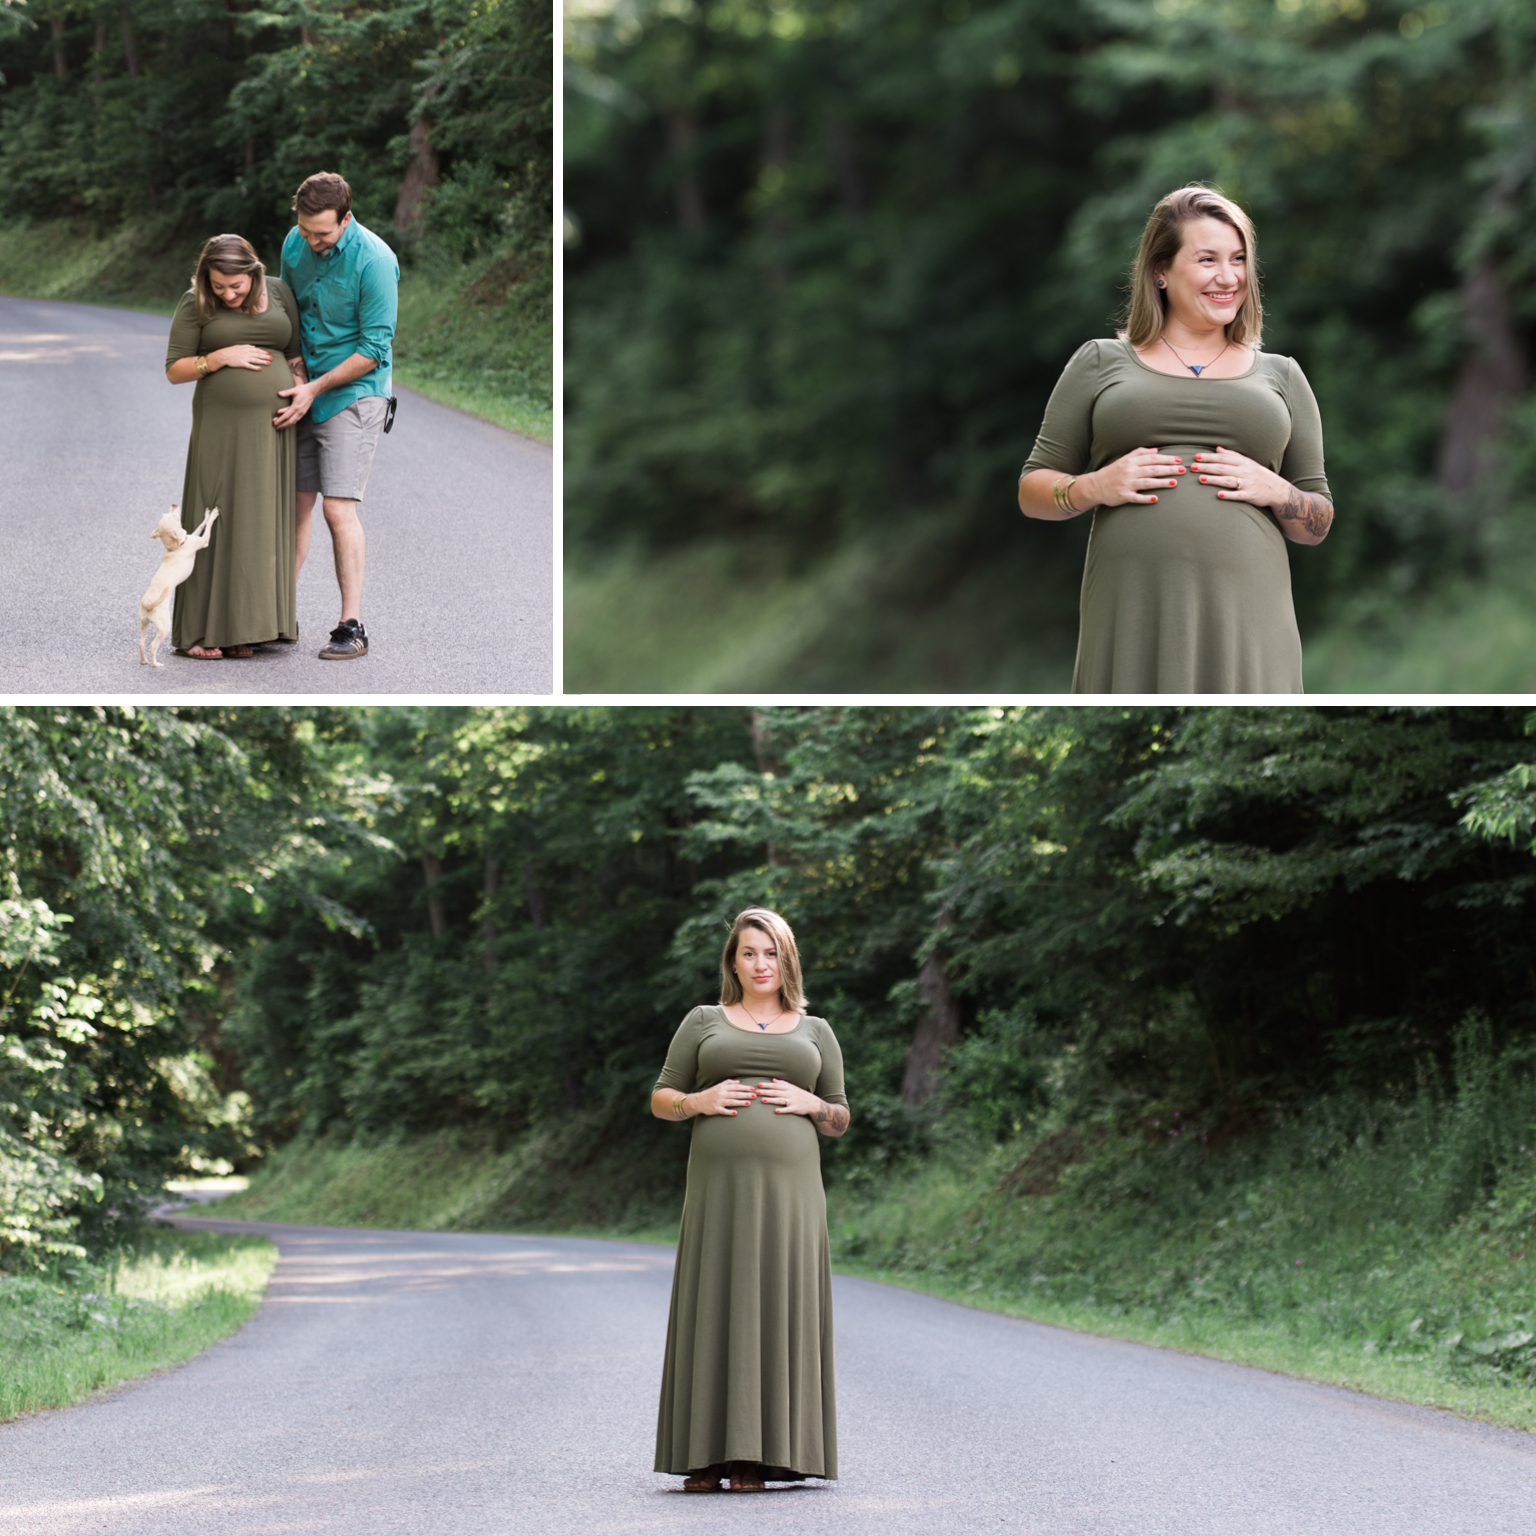 Maternity Session outdoors Williamsport PA greenery glowing momma